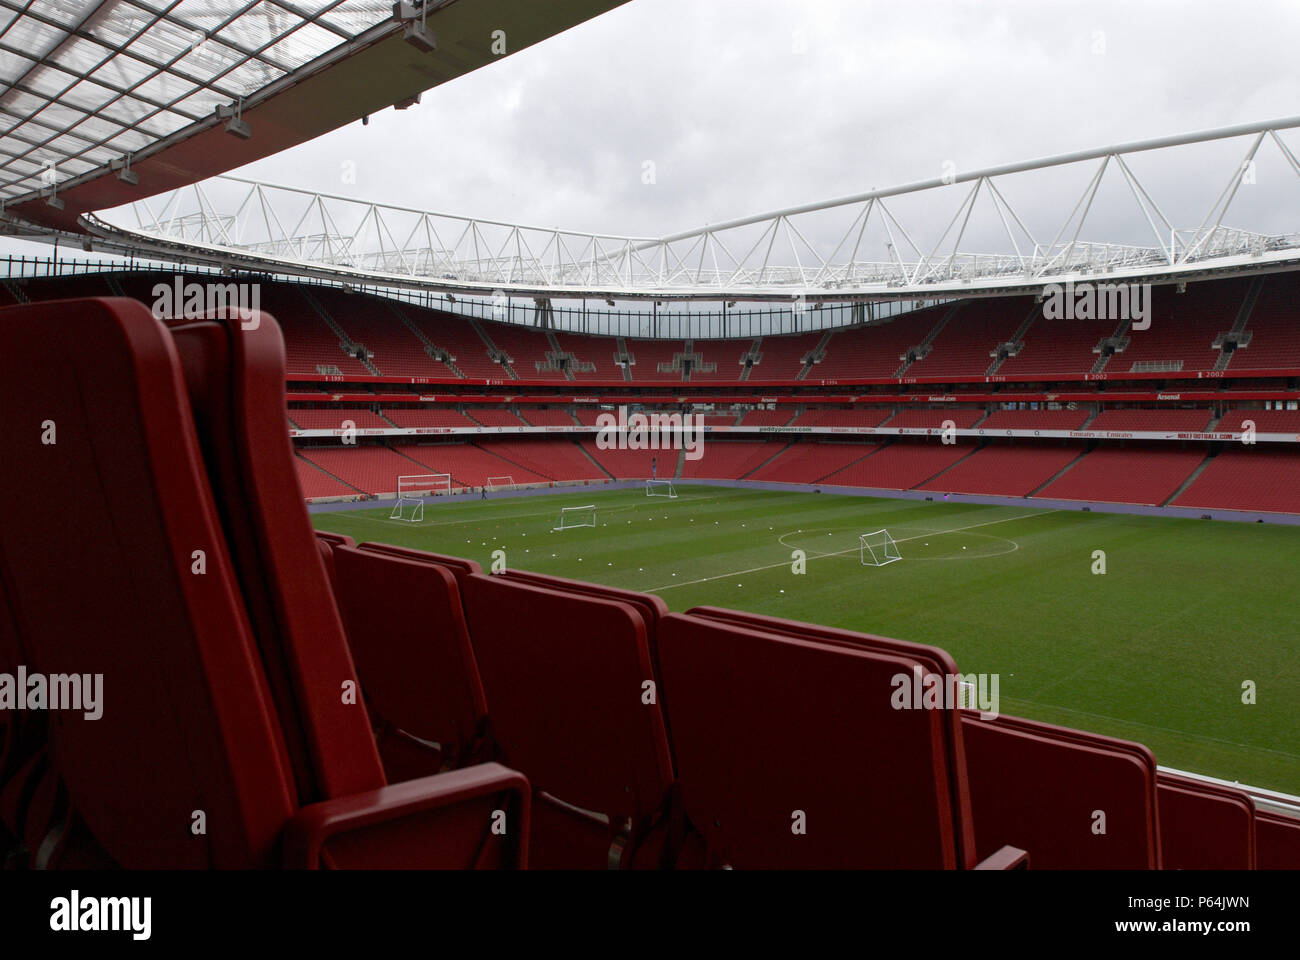 The Emirates Stadium in Ashburton Grove, north London, is the home of Arsenal Football Club. The stadium opened in July 2006, and has an all-seated ca - Stock Image